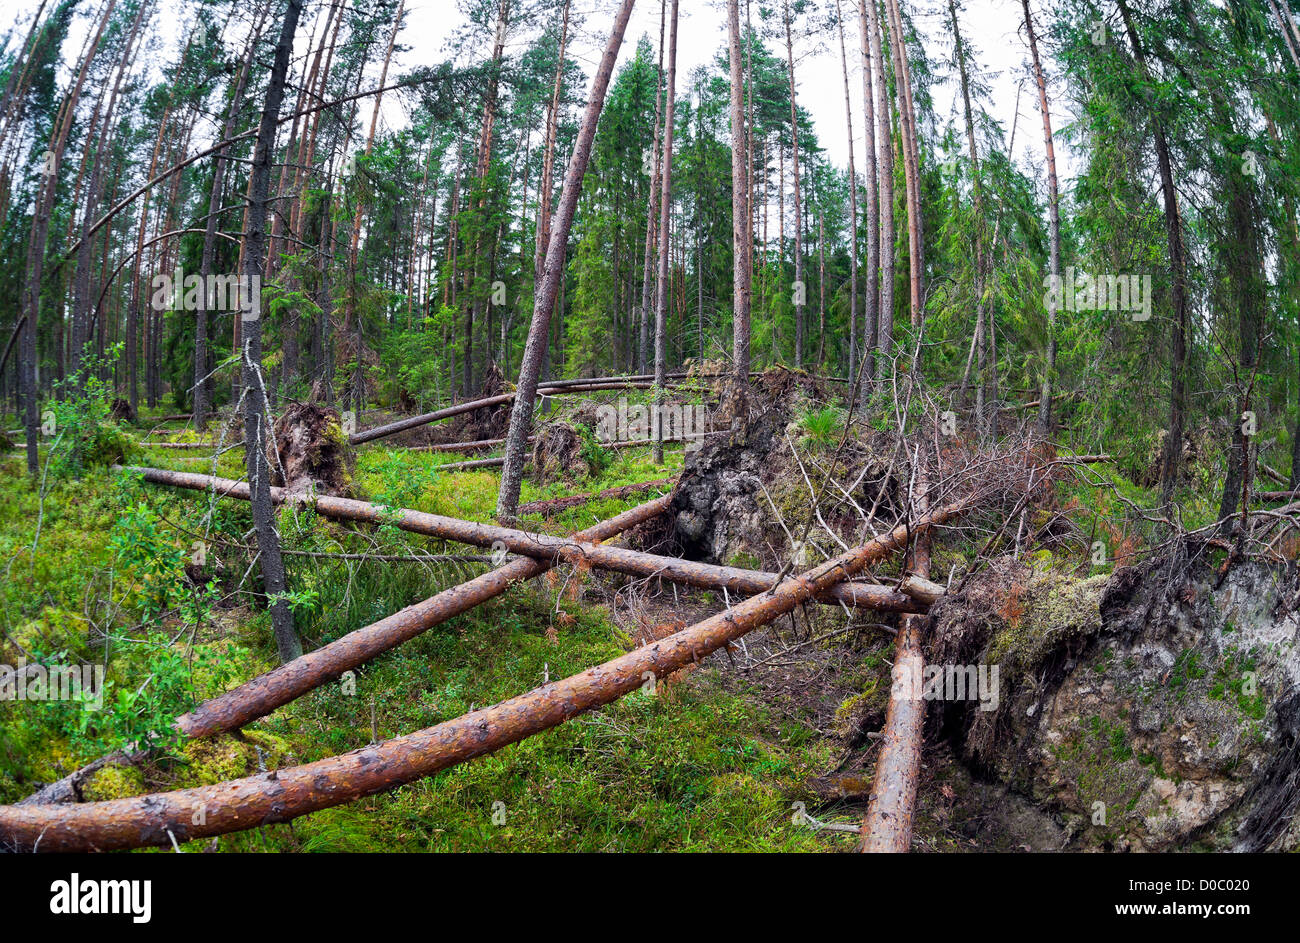 Fallen trees in the forest - Stock Image